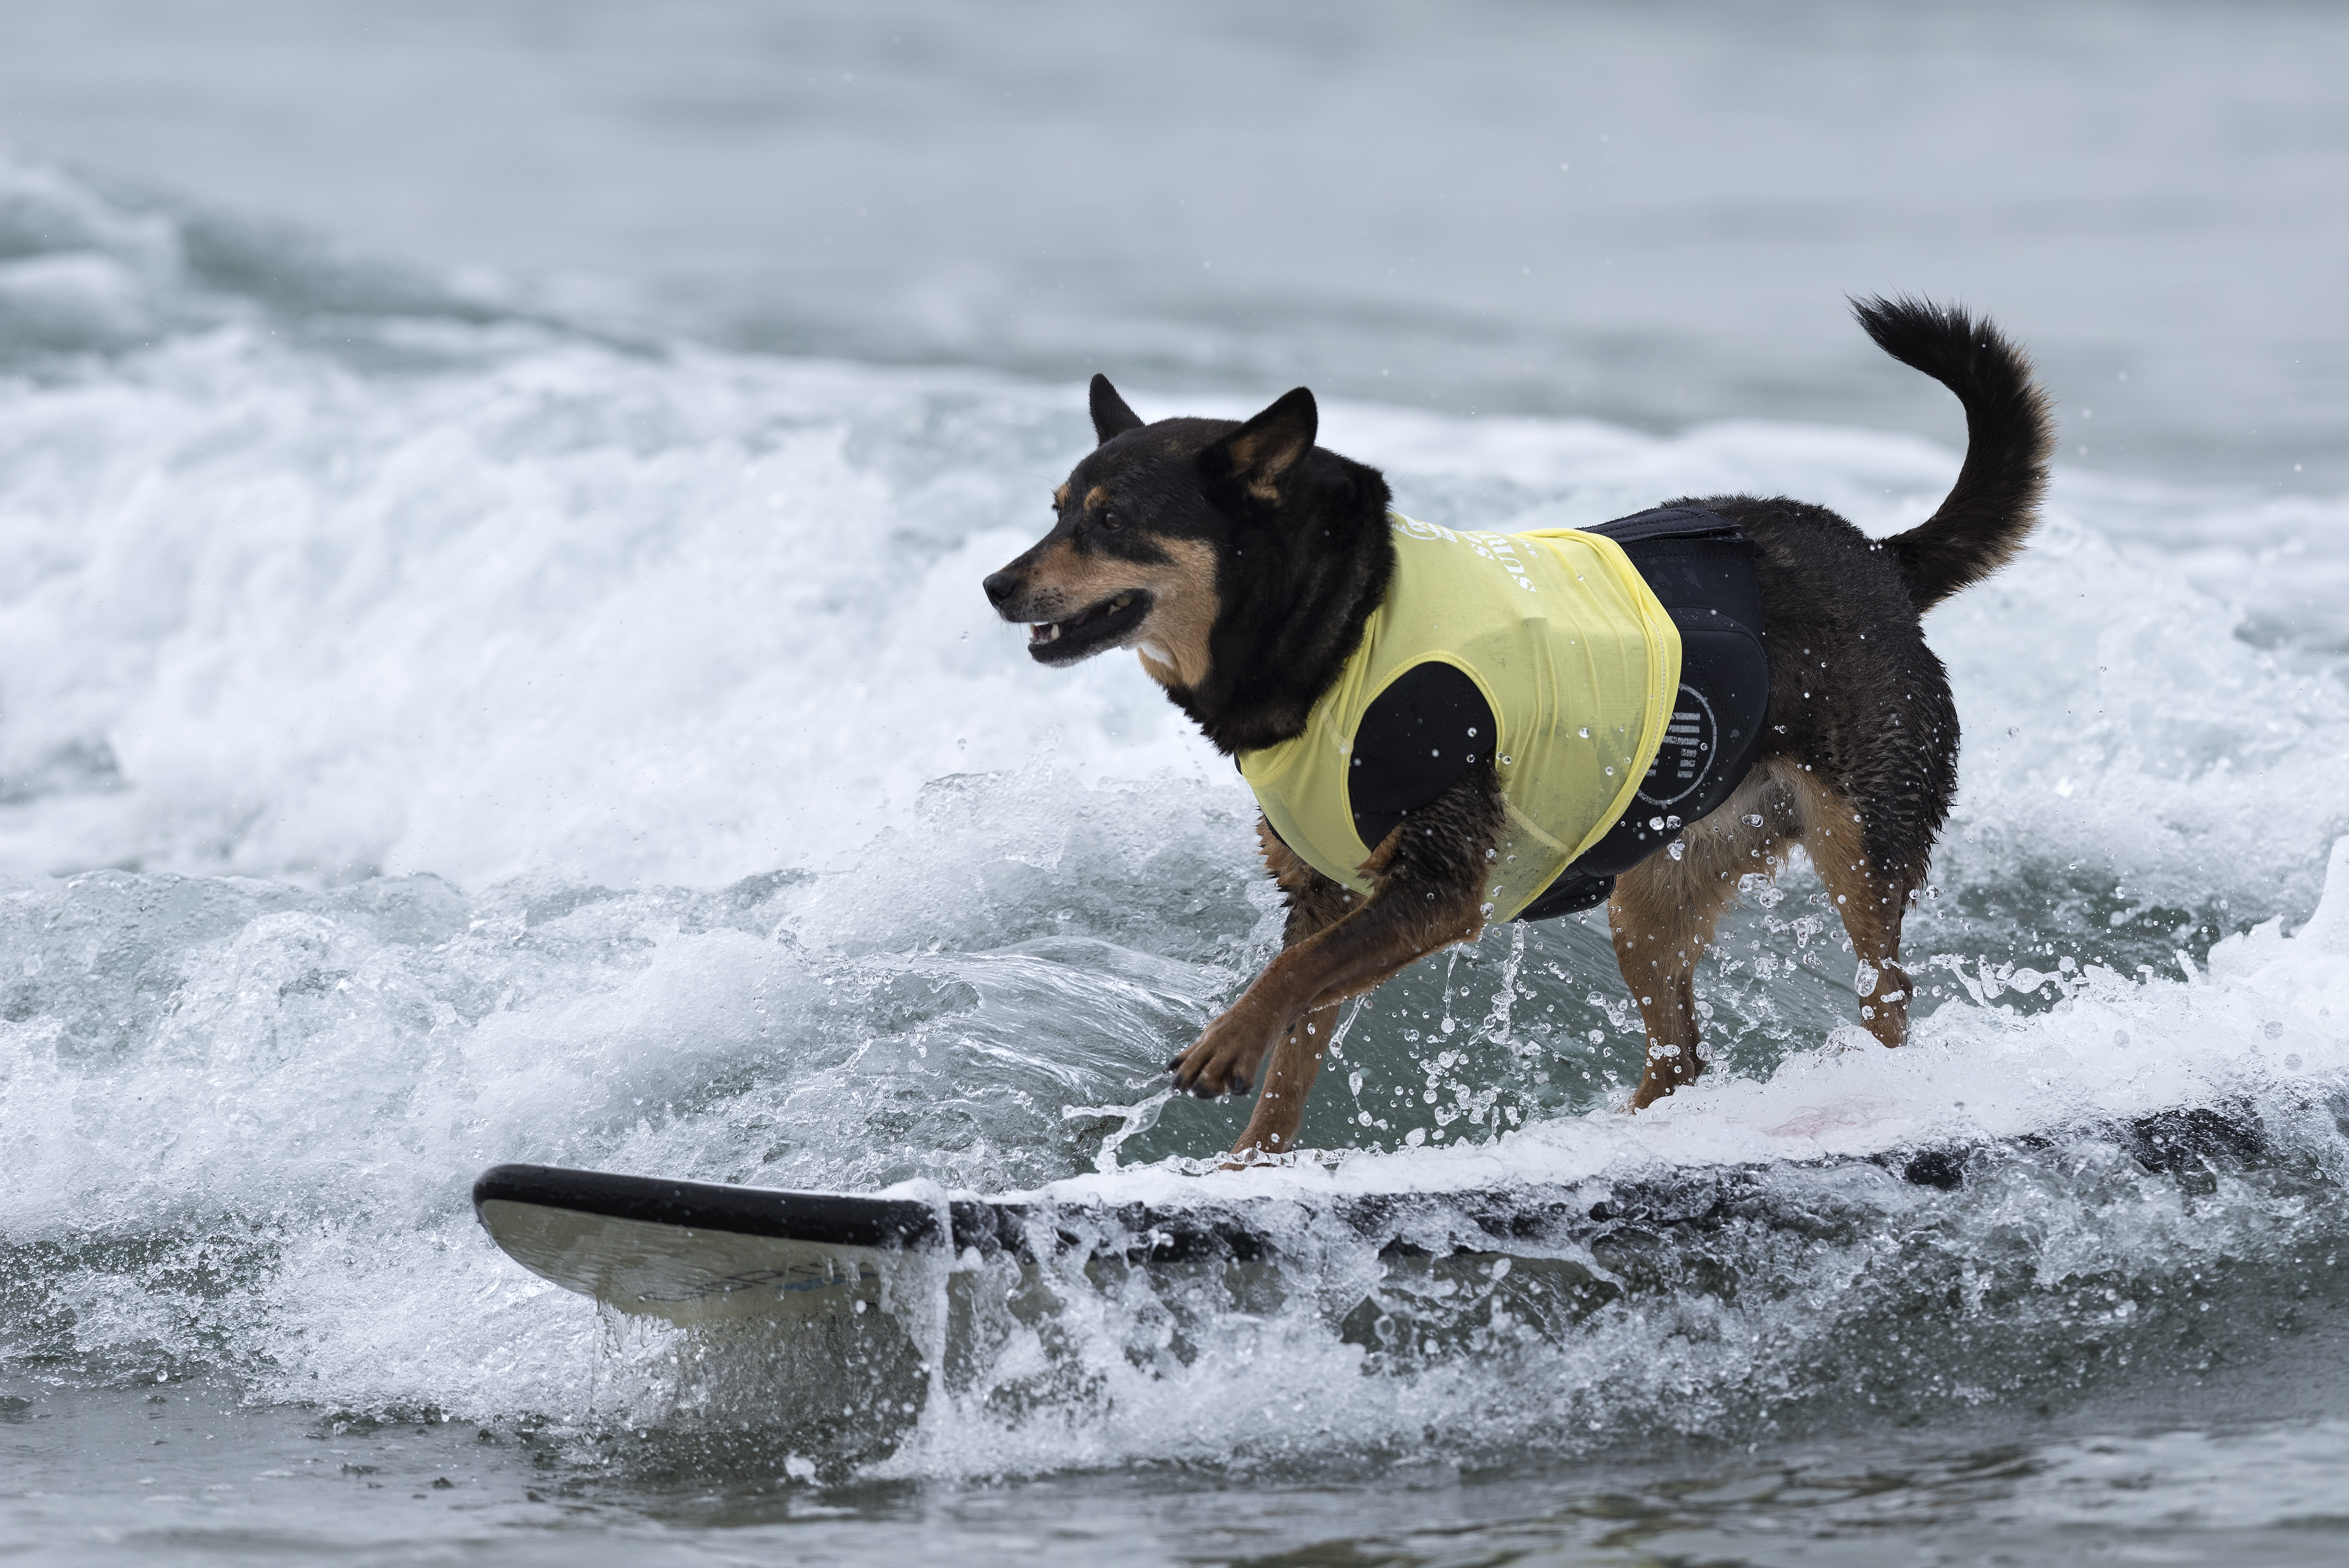 Surfer dog, Abbie, competes in the 11th annual Helen Woodward Animal Centers Surf Dog Surf-A-Thon in Del Mar, California. October 2, 2016.